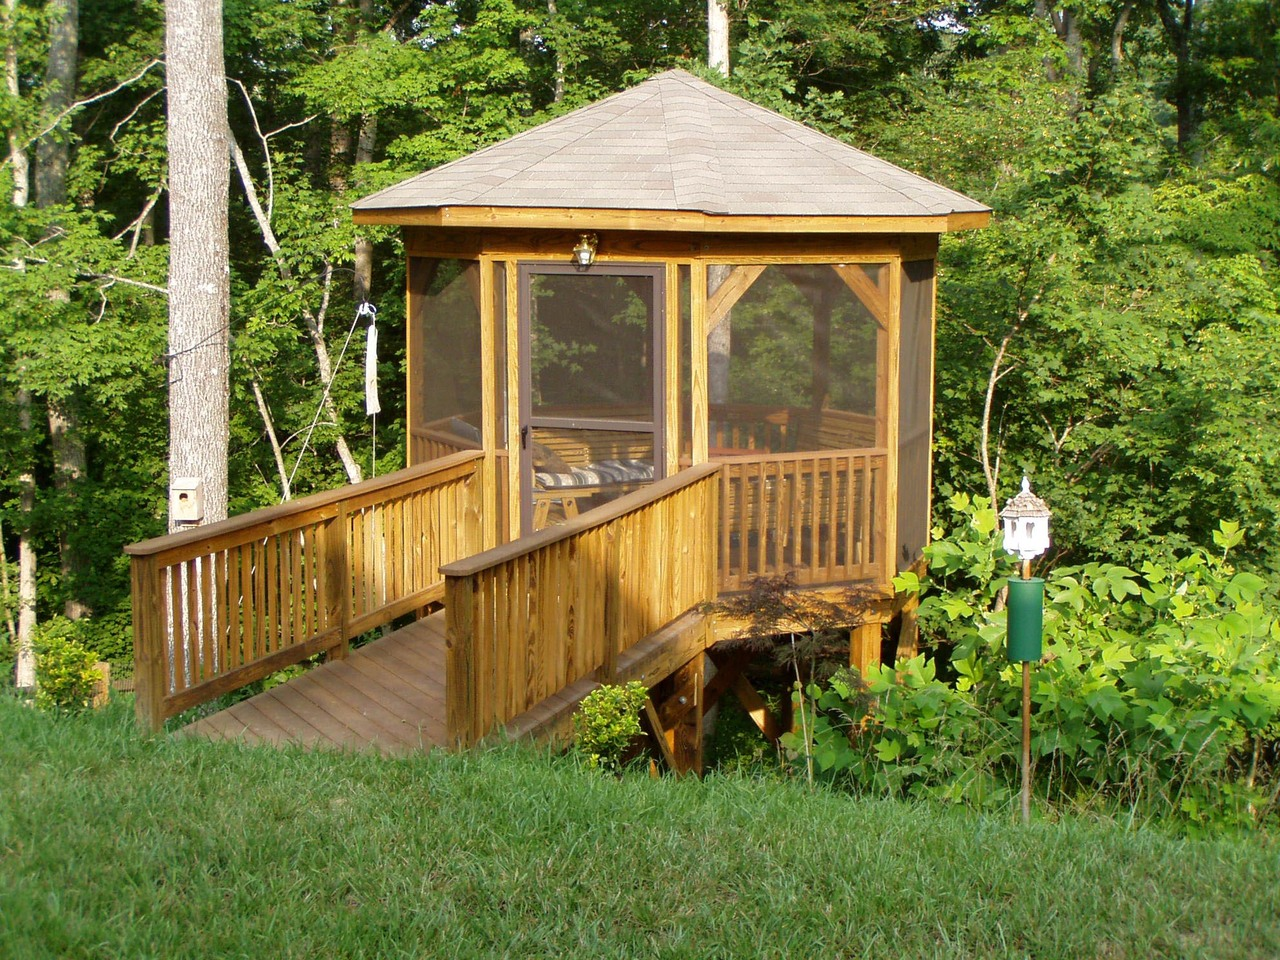 Screened Gazebo Kits | Screened Gazebo | Screened Gazebo